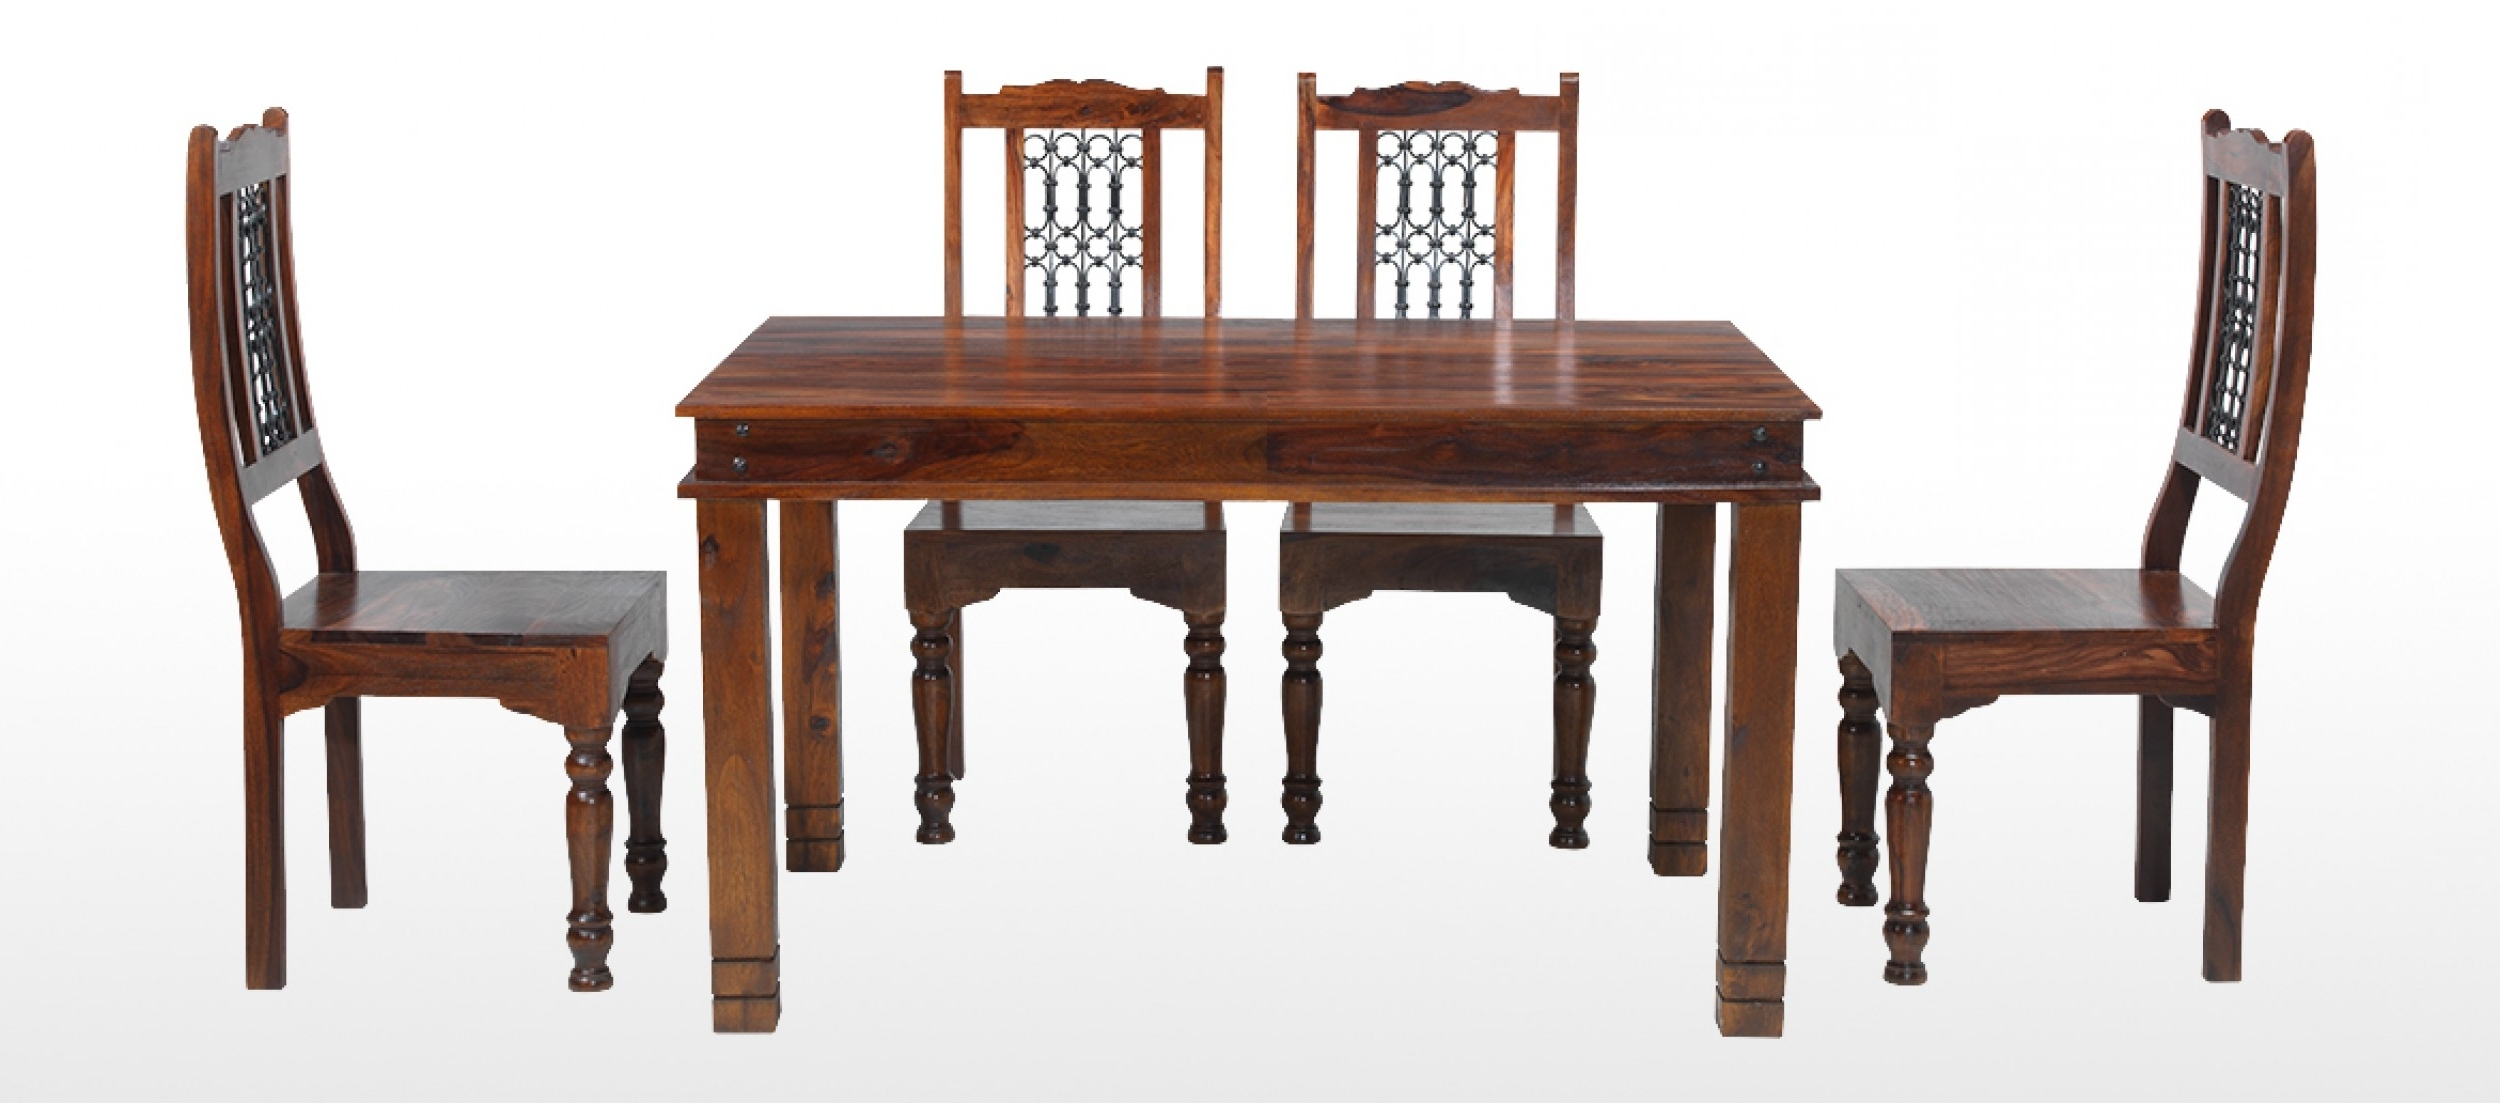 Sheesham Dining Tables And 4 Chairs Regarding Fashionable Chunky Wood Dining Table And Chairs Jali Sheesham 120 Cm Chunky (View 22 of 25)